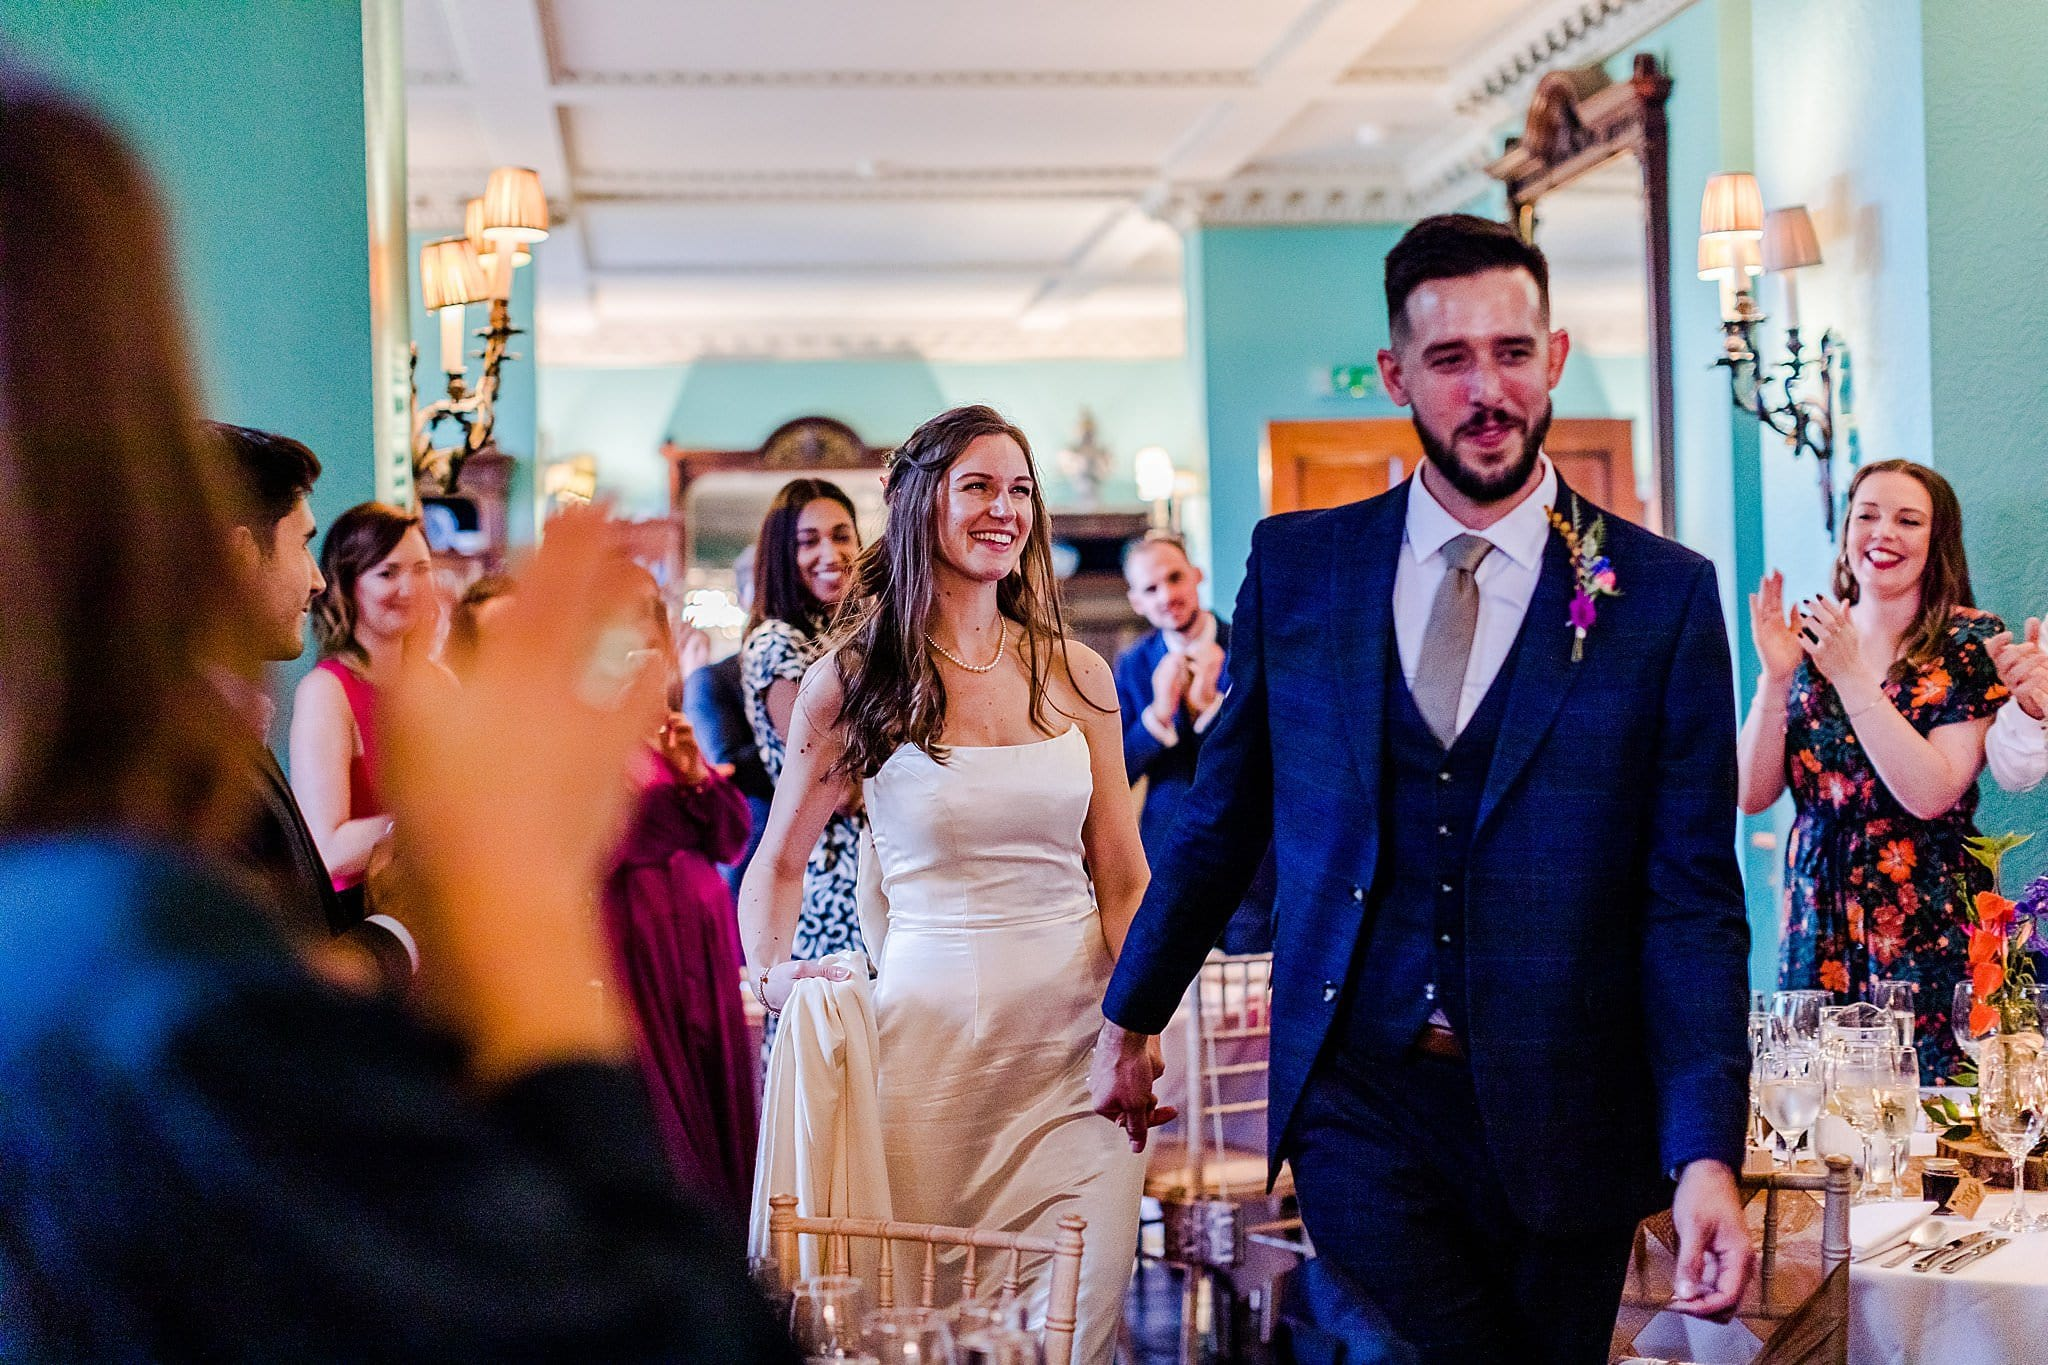 Bride and groom enter the room to great applause from their smiling guests at Prestwold Hall